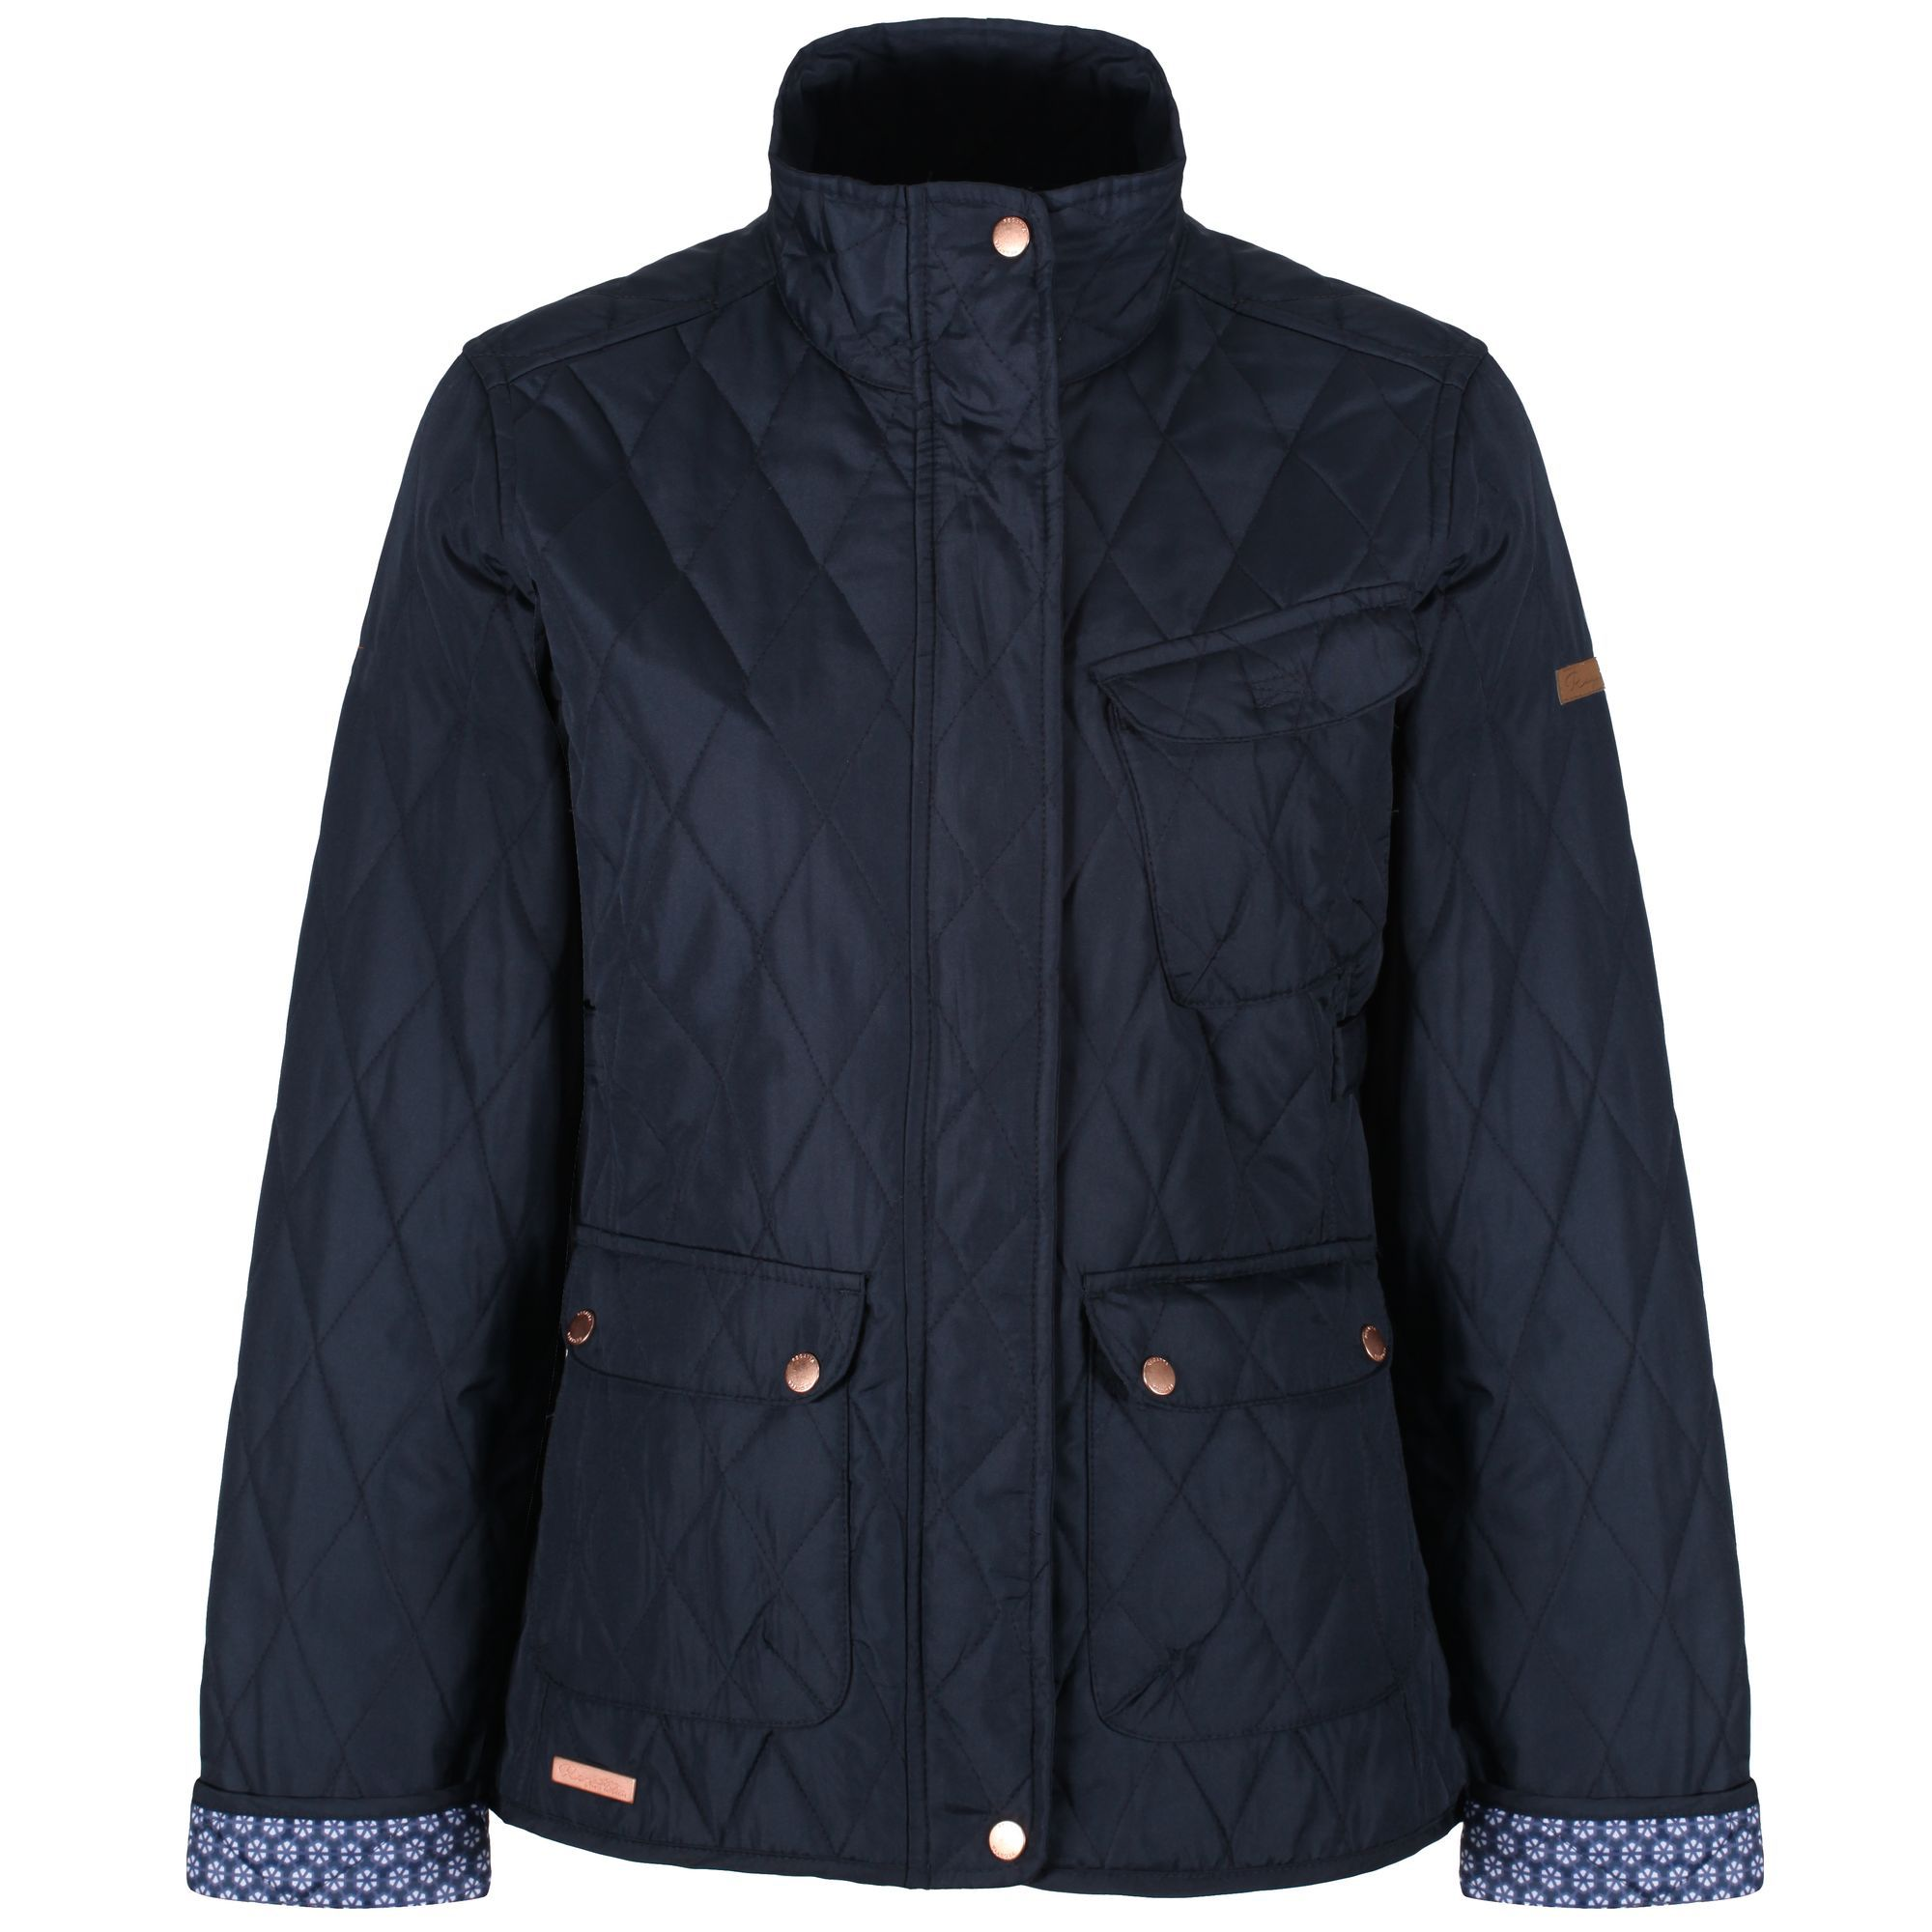 Regatta Camryn Jacket, Blue